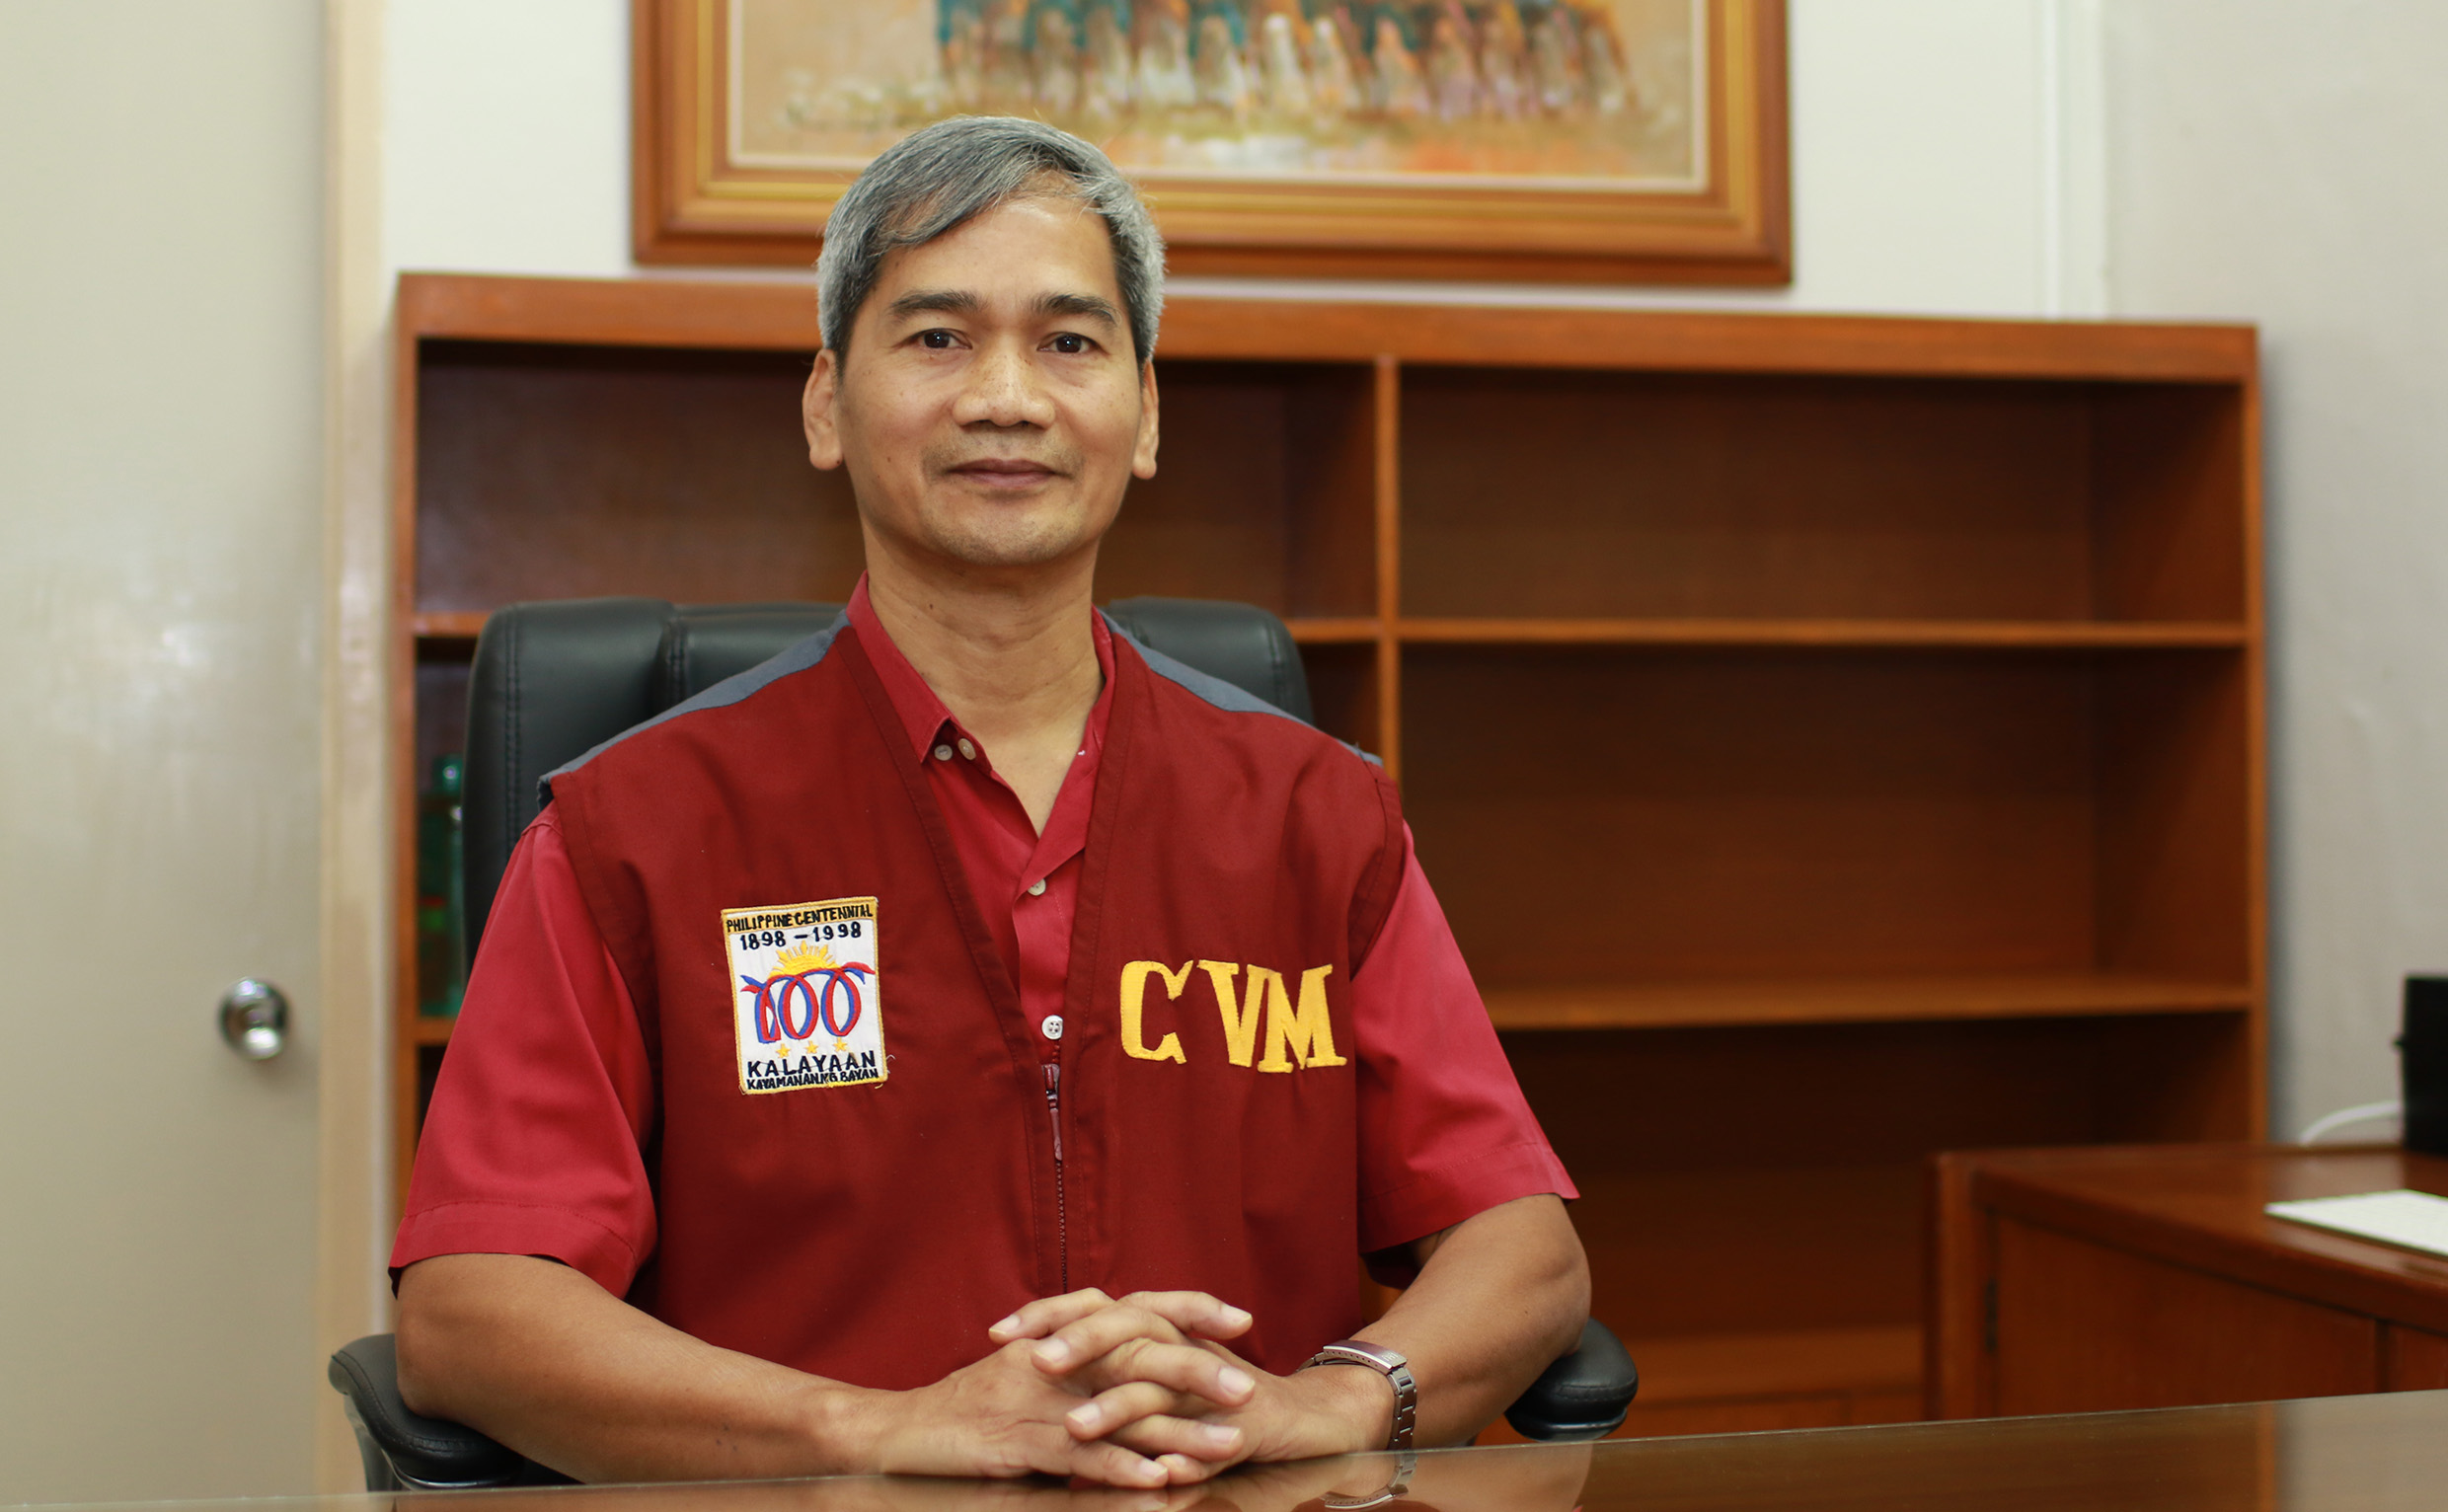 Dr. Acorda is the new CVM dean